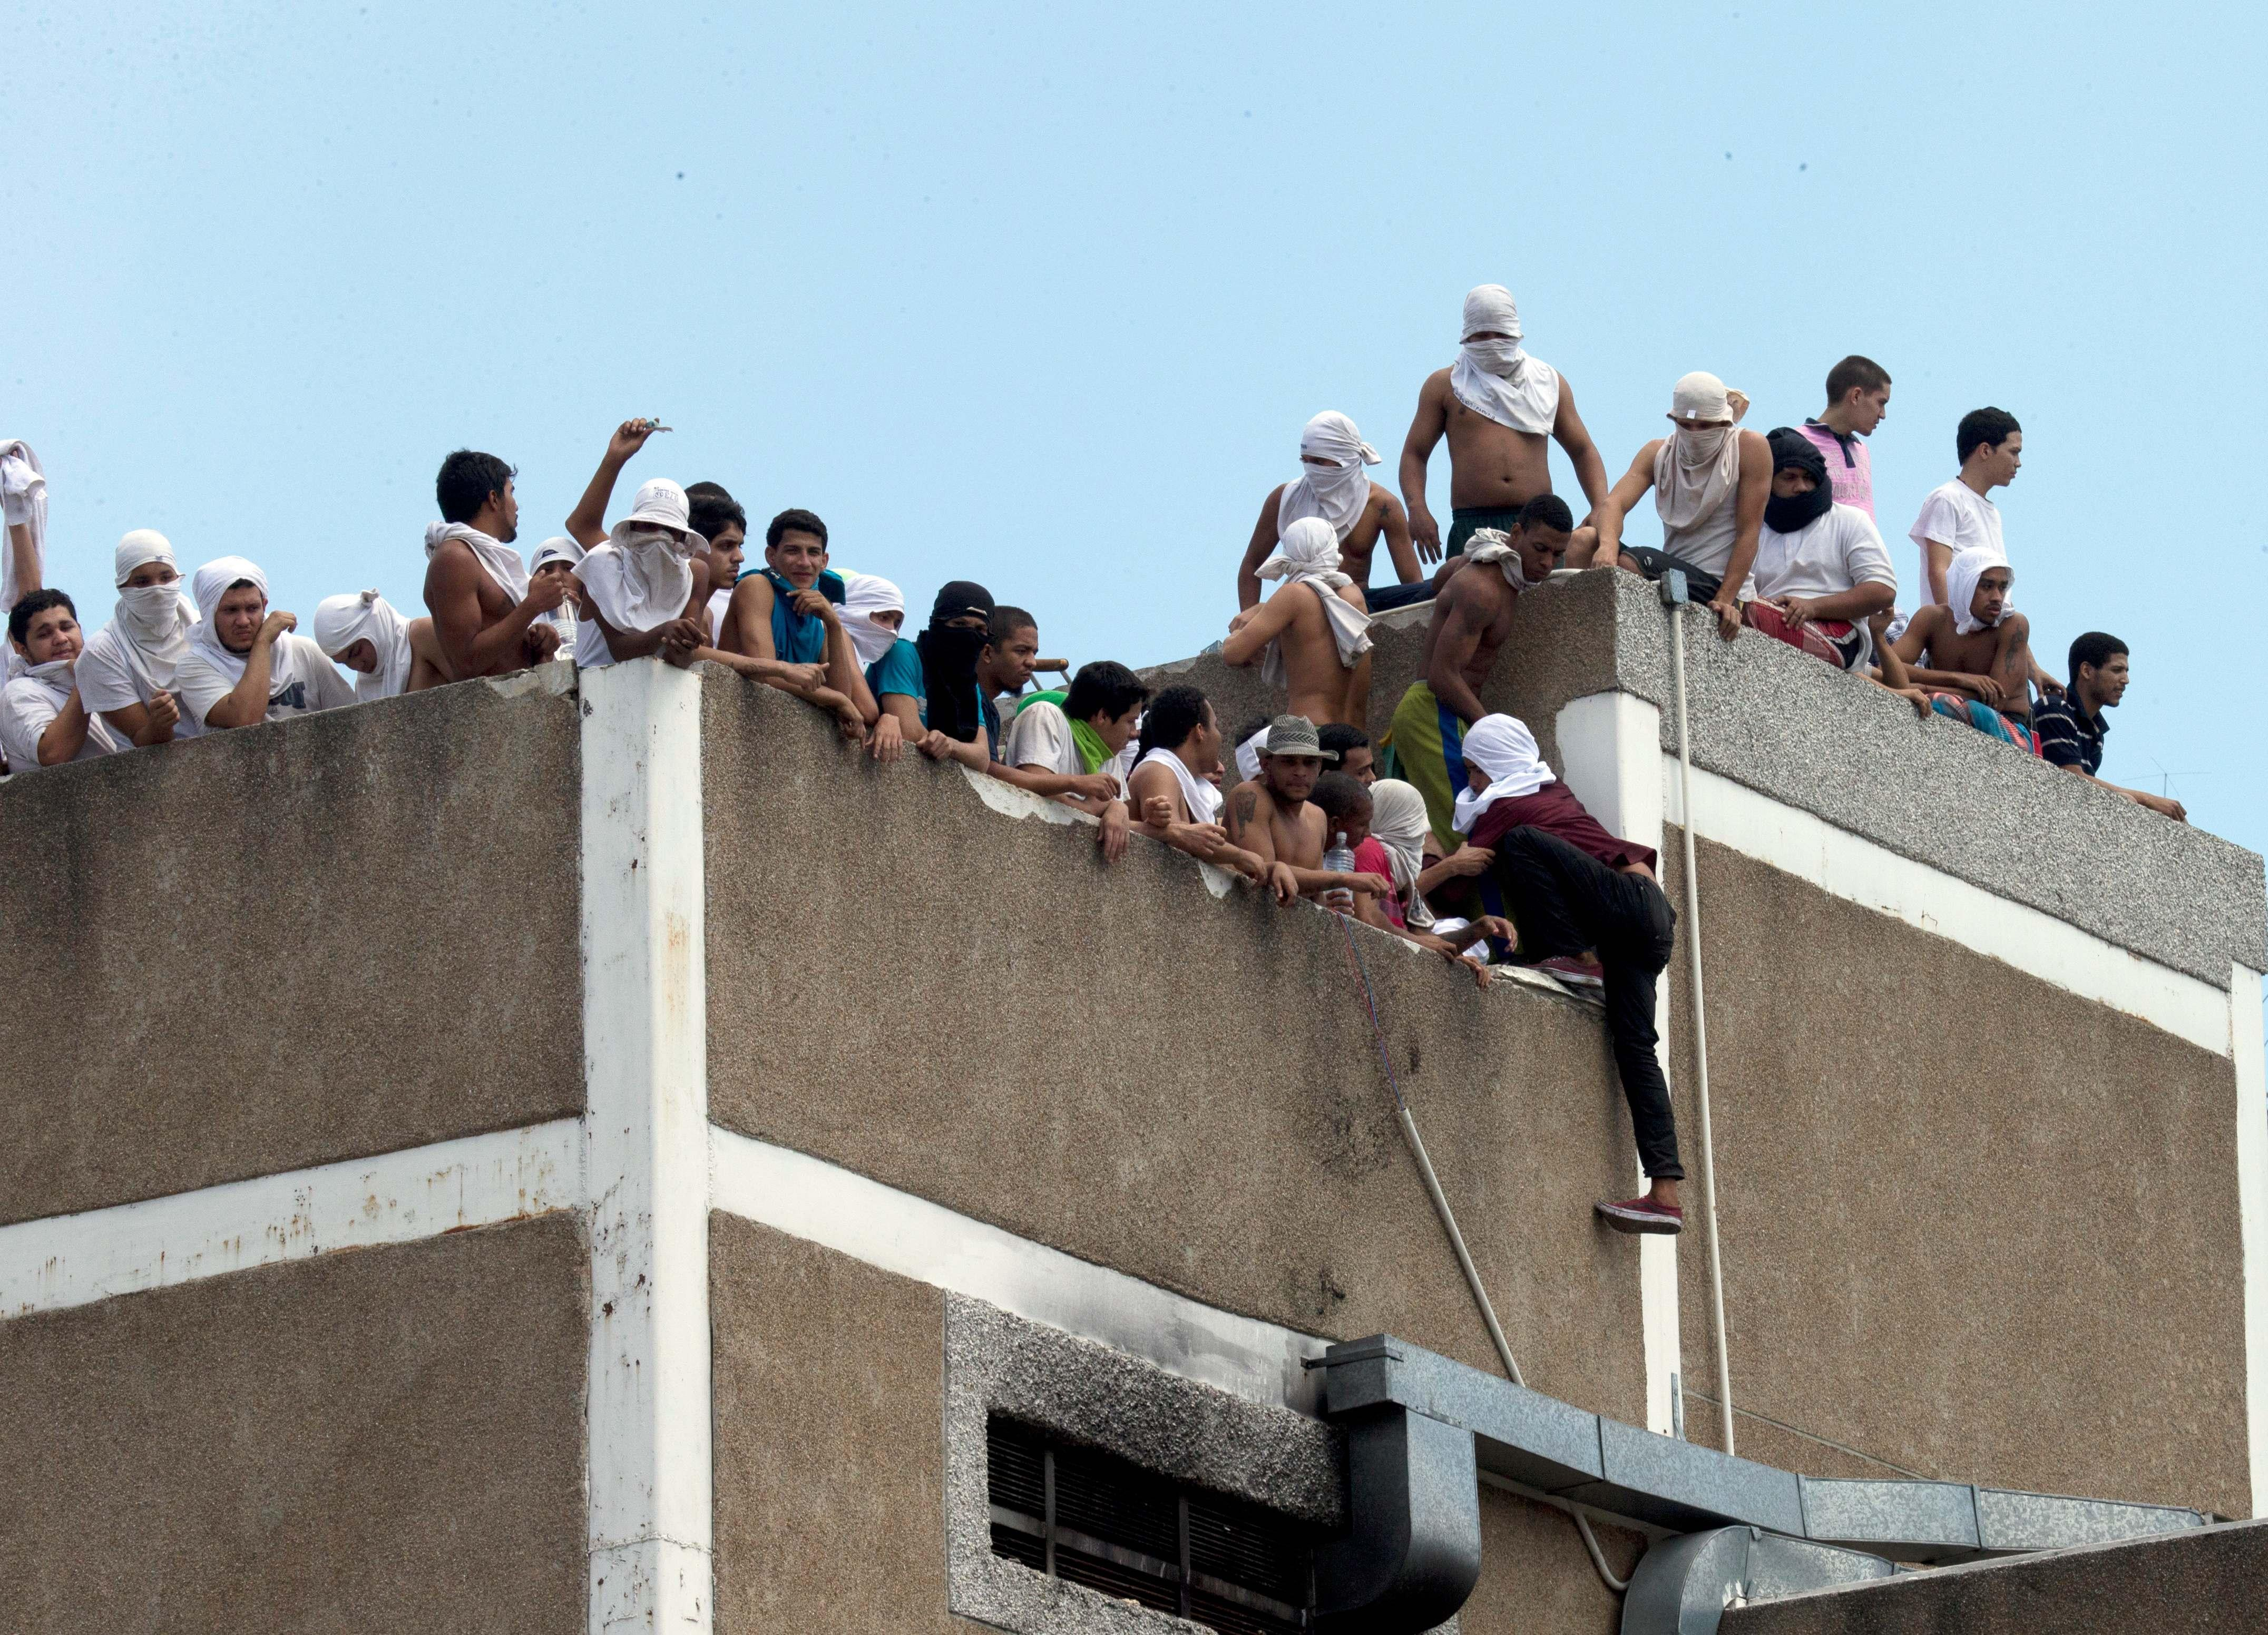 Venezuelan prison riot ends at overcrowded facility